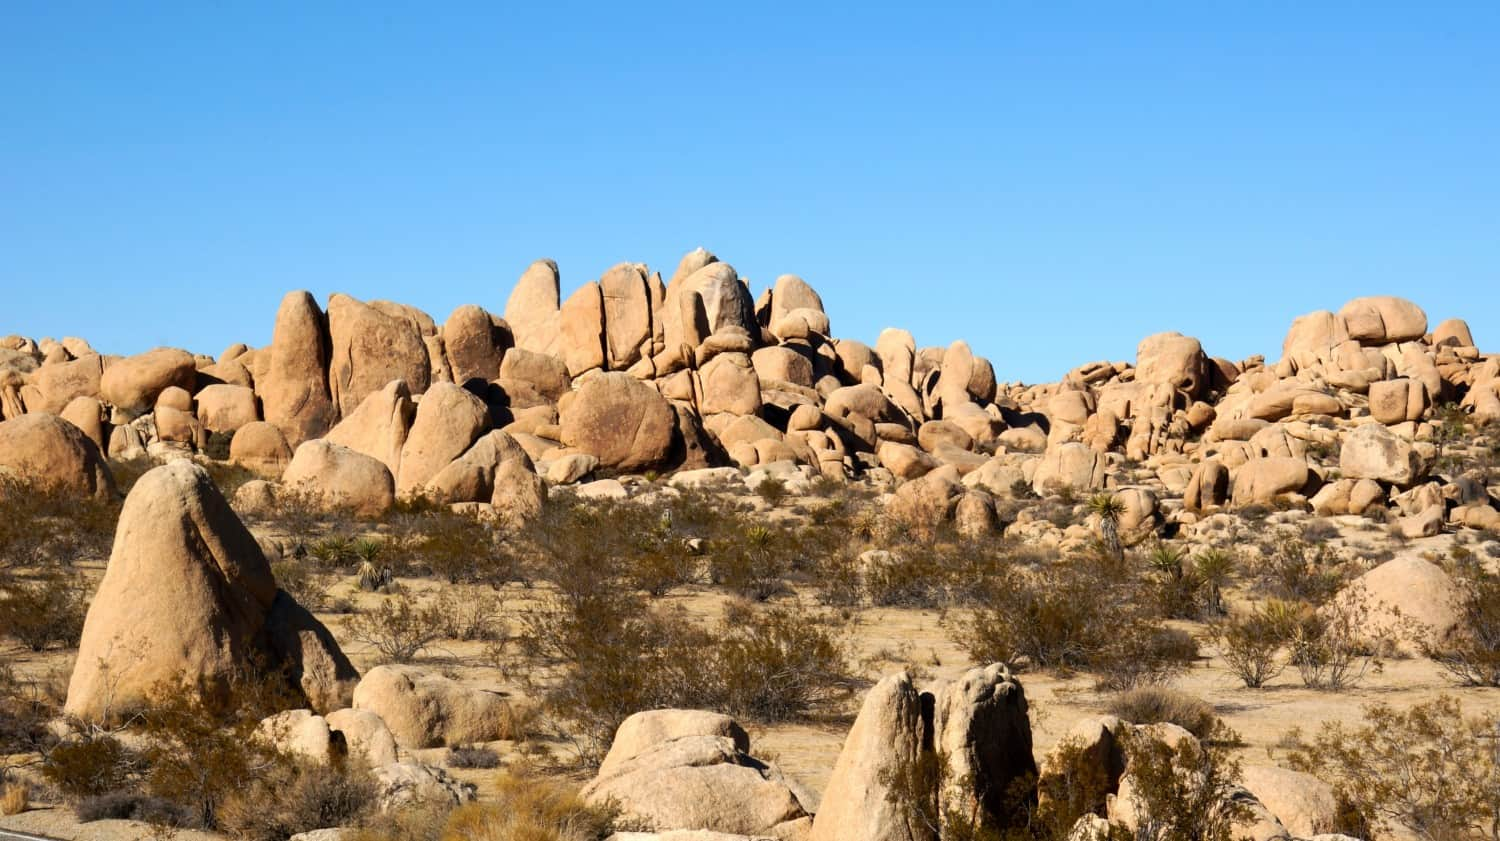 Joshua Tree National Park - Palm Springs, CA